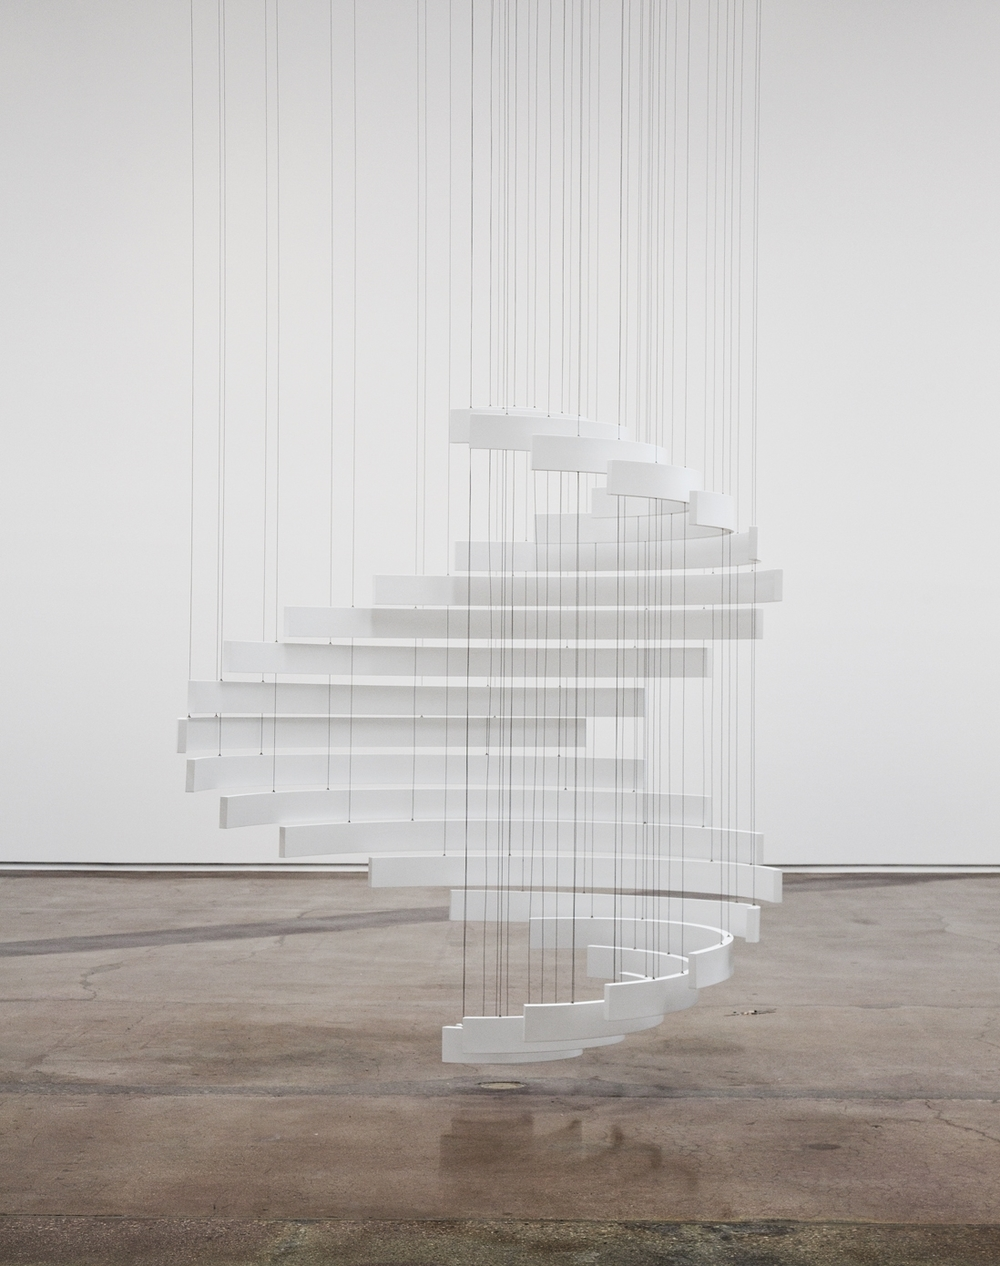 Troika,  The Sum of All Possibilities , 2014, Suspended sculpture (steel, aluminum, painted wood), 59 x 59 x 106 1/4 inches